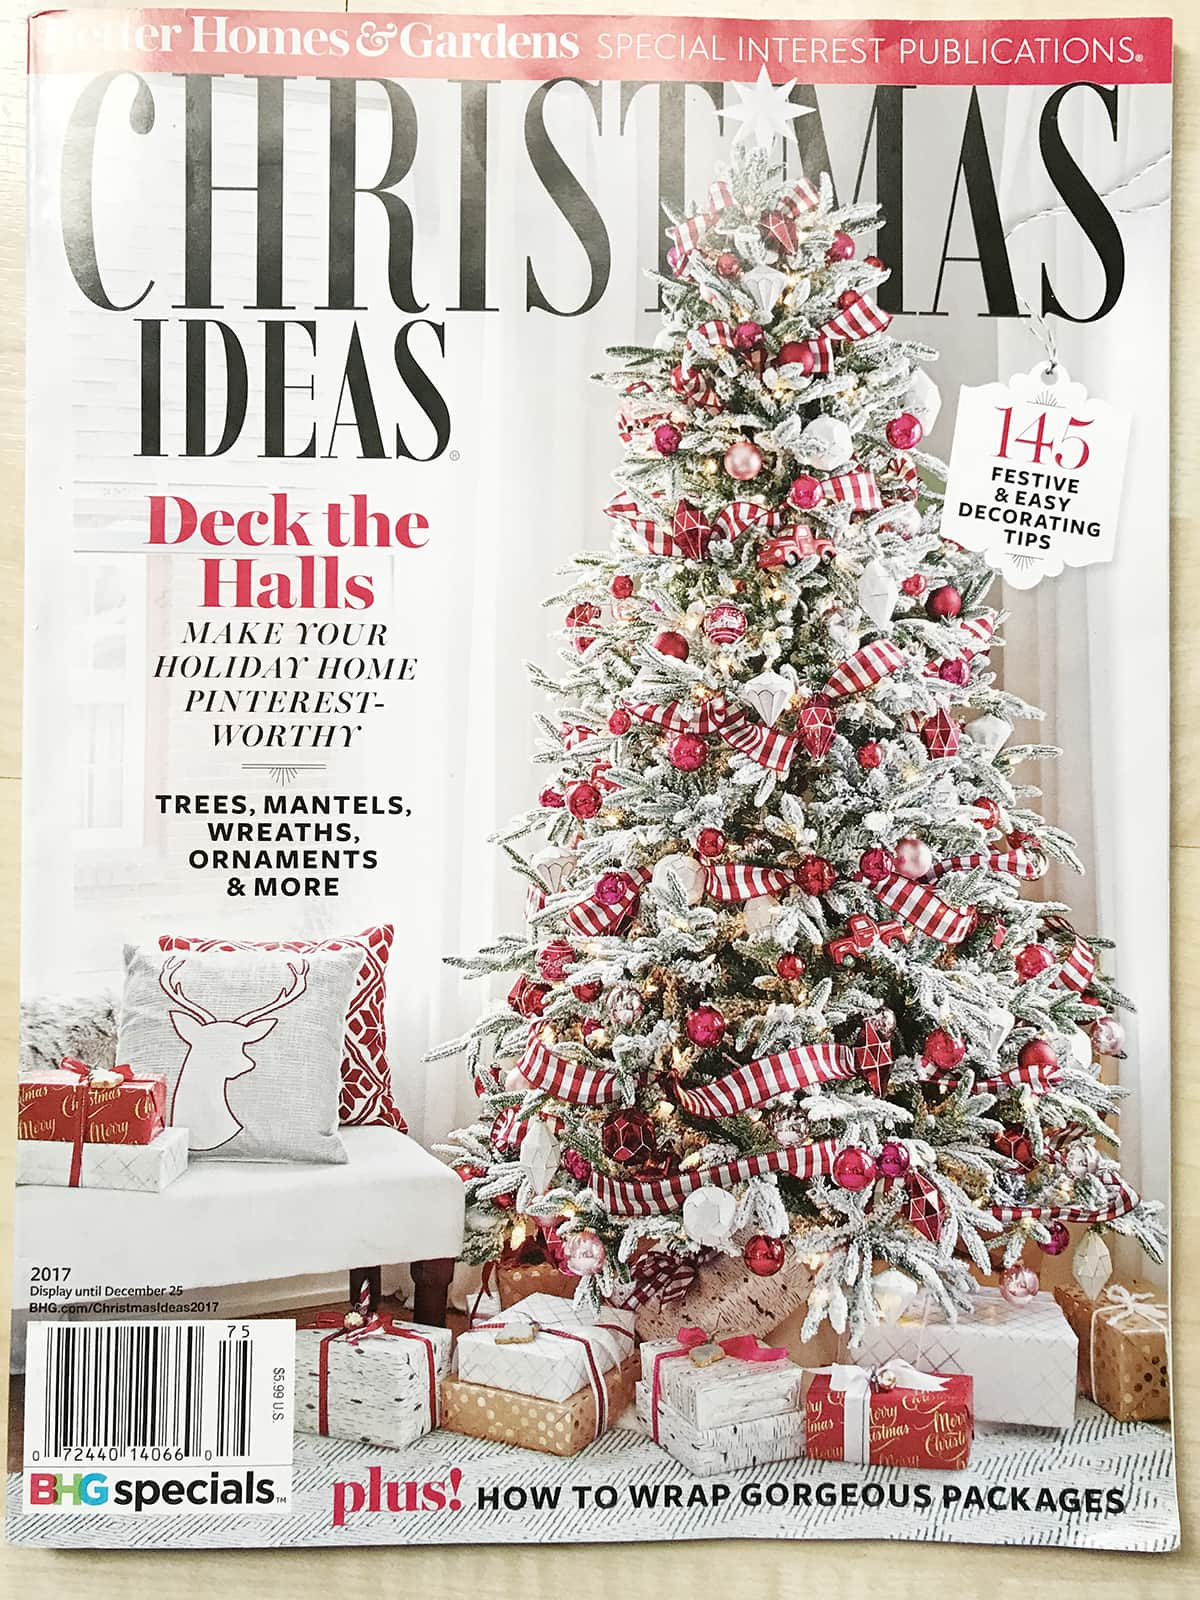 Better homes and gardens stylemaker and christmas ideas Better homes and gardens christmas special